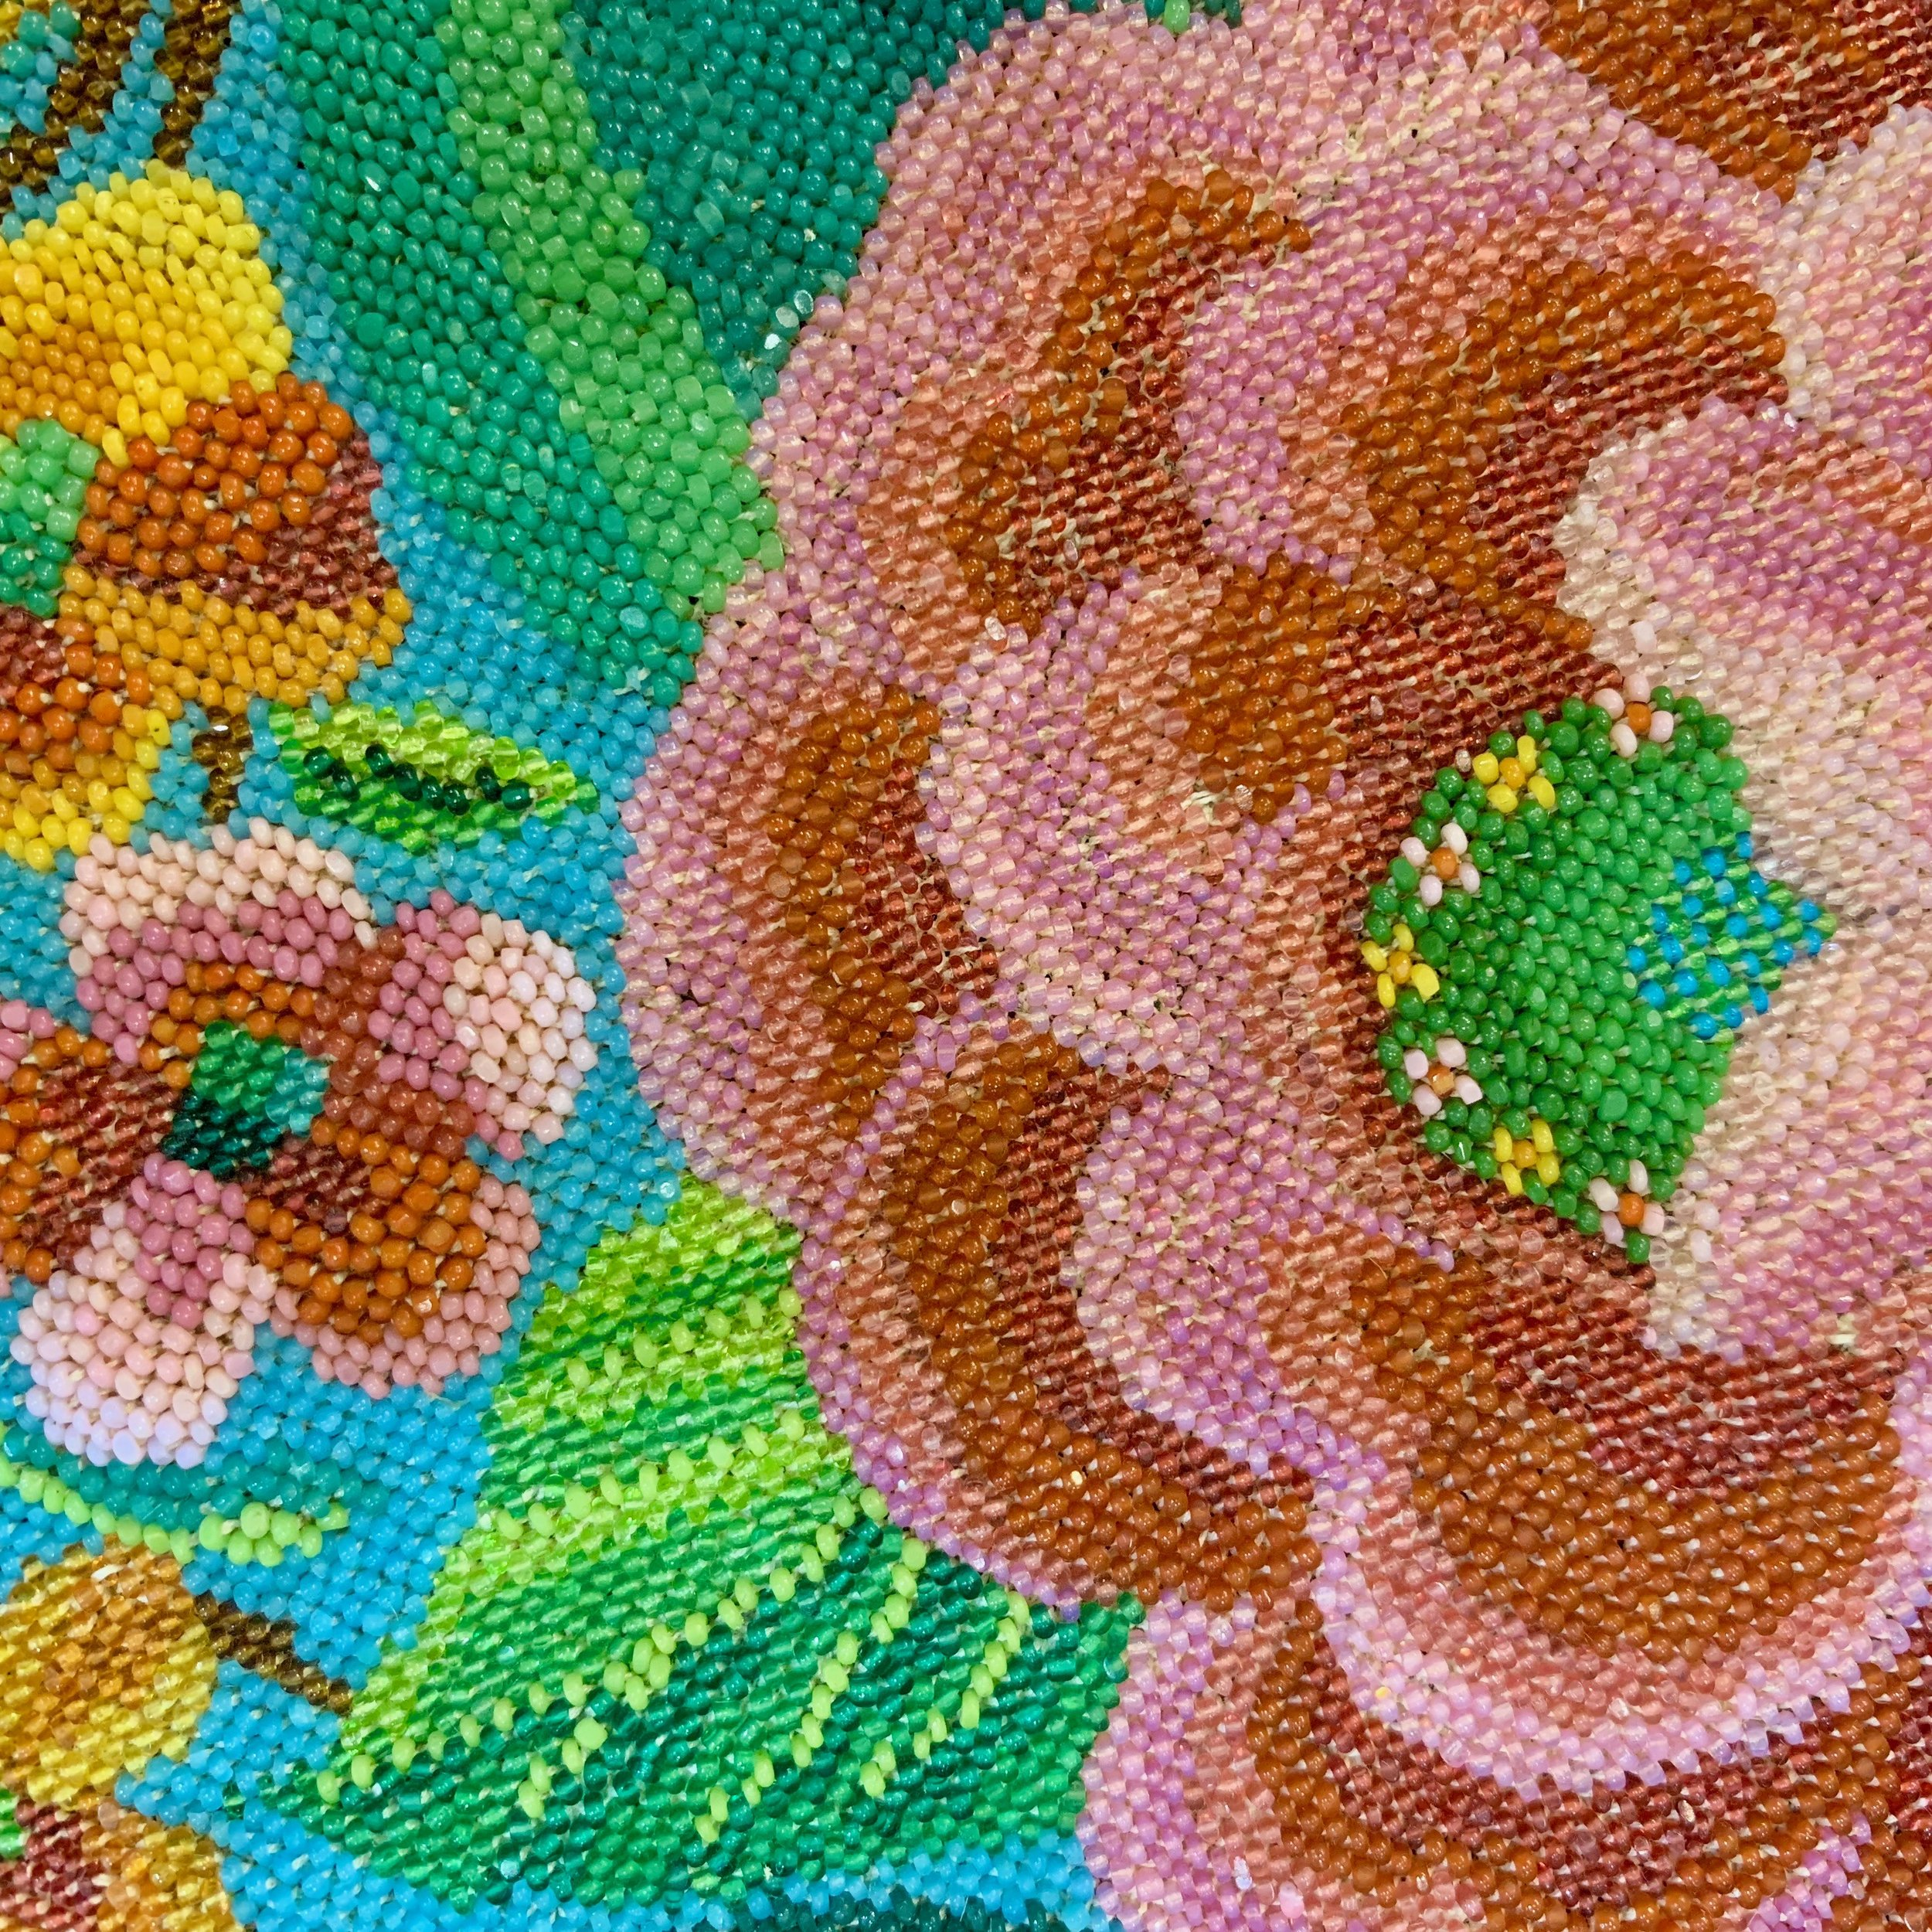 A detailed close-up of the magnificent beadwork sewn onto shoes, purses, and table coverings